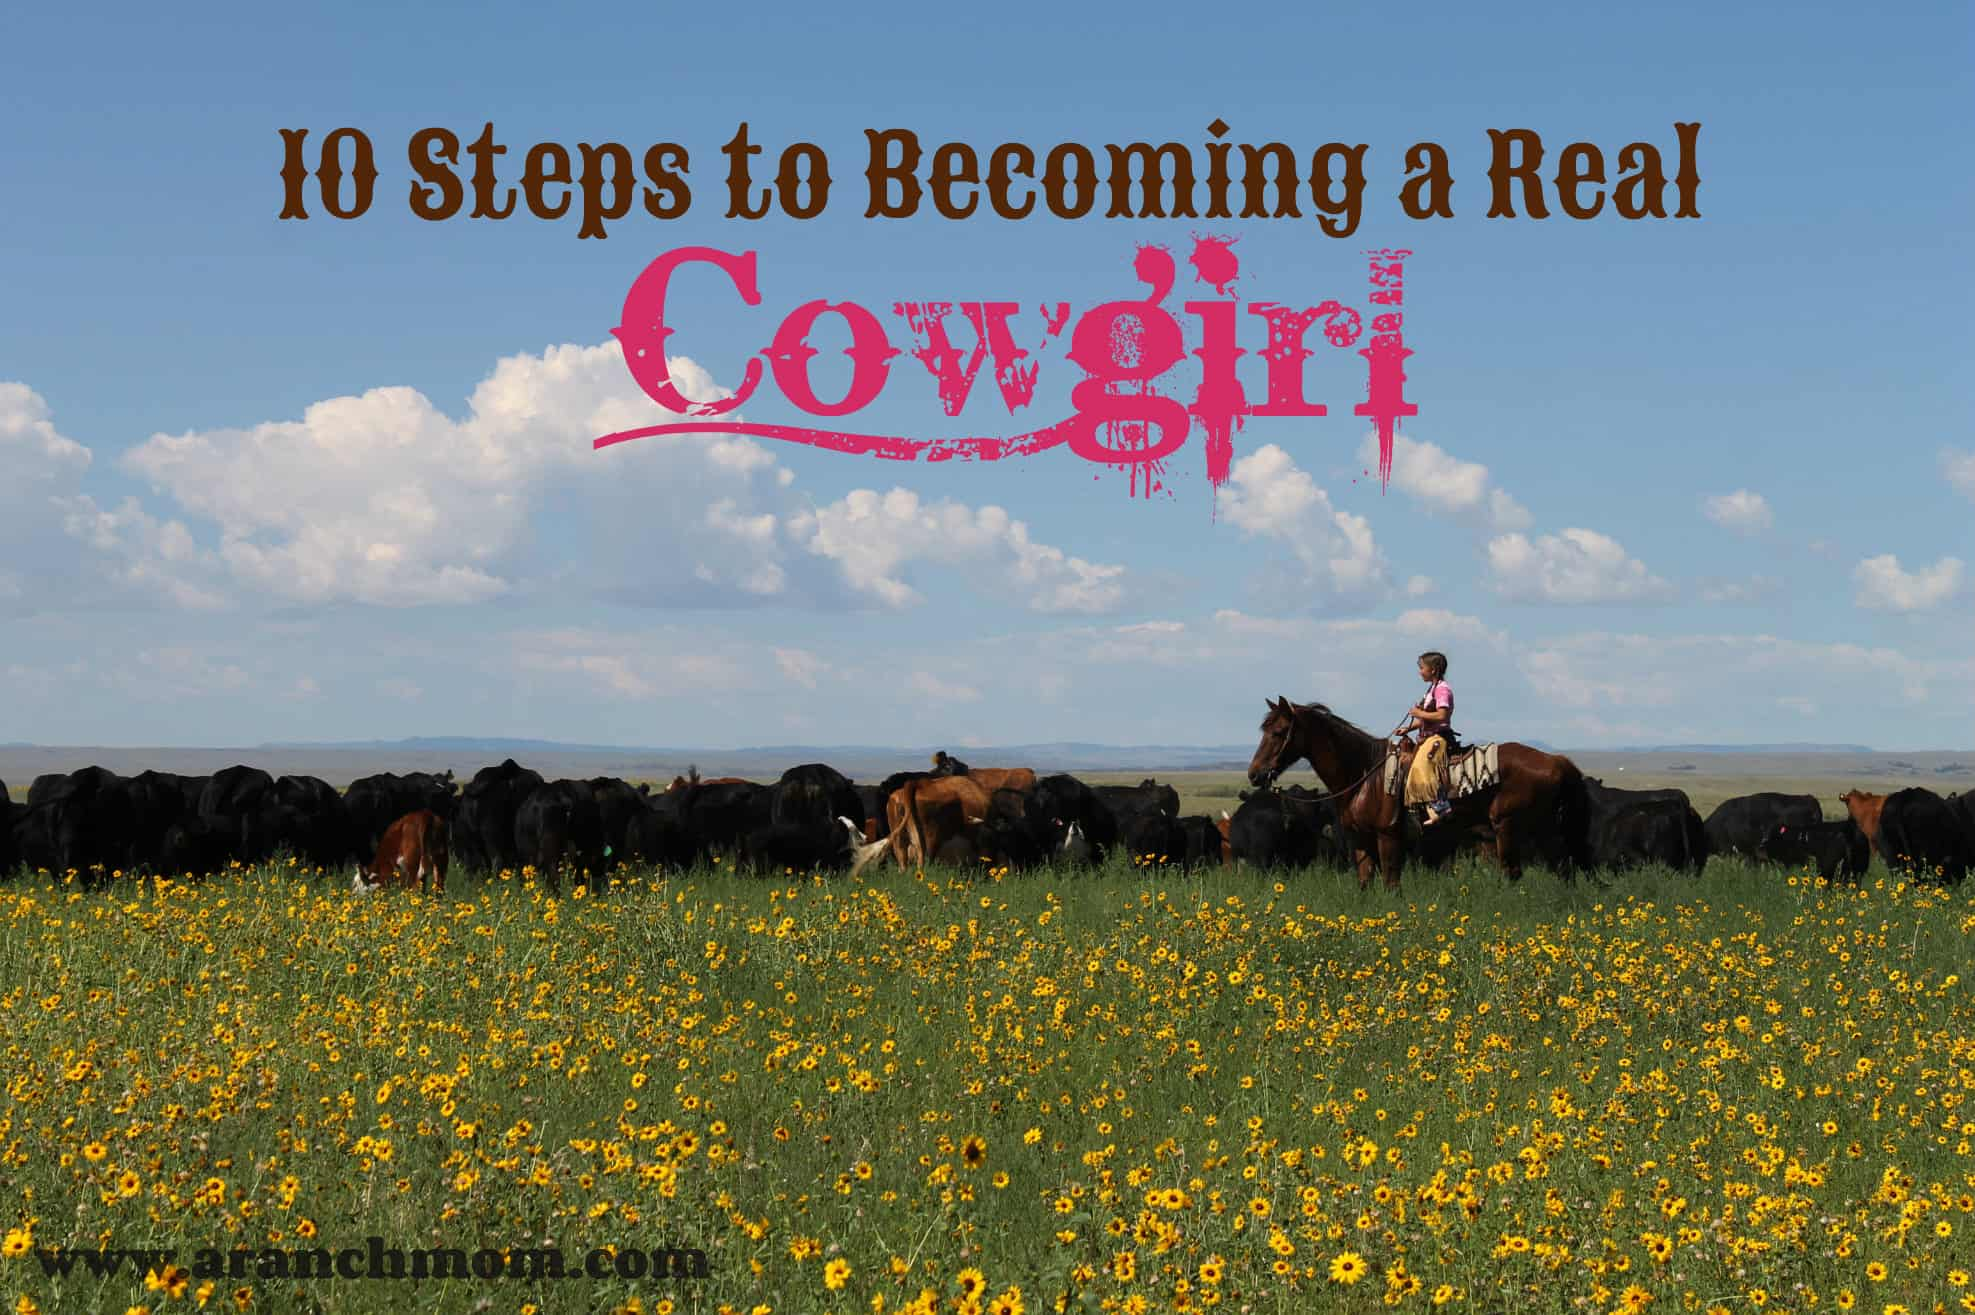 10 steps to becoming a real cowgirl